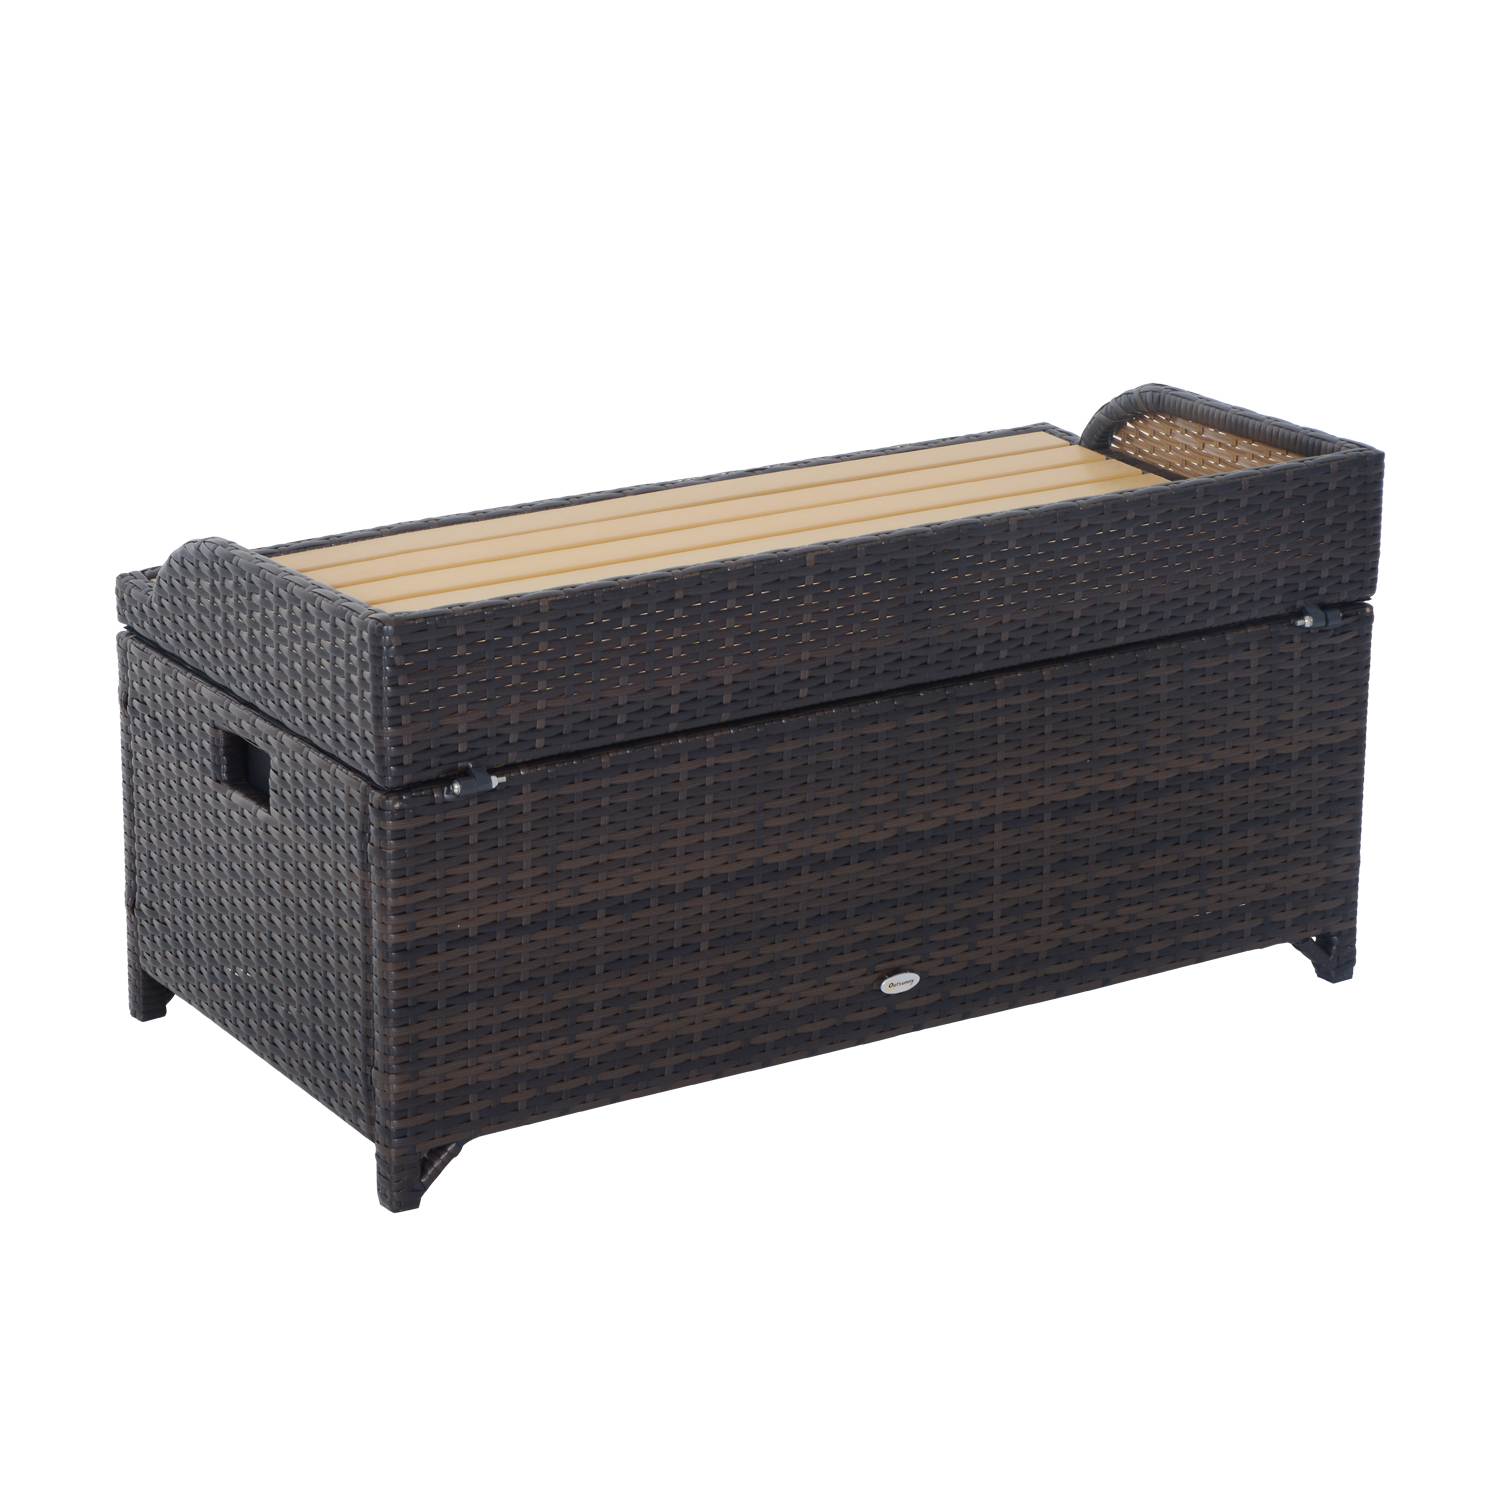 Marvelous Outsunny Rattan Storage Bench 102Lx51Wx51H Cm Mixed Brown Onthecornerstone Fun Painted Chair Ideas Images Onthecornerstoneorg